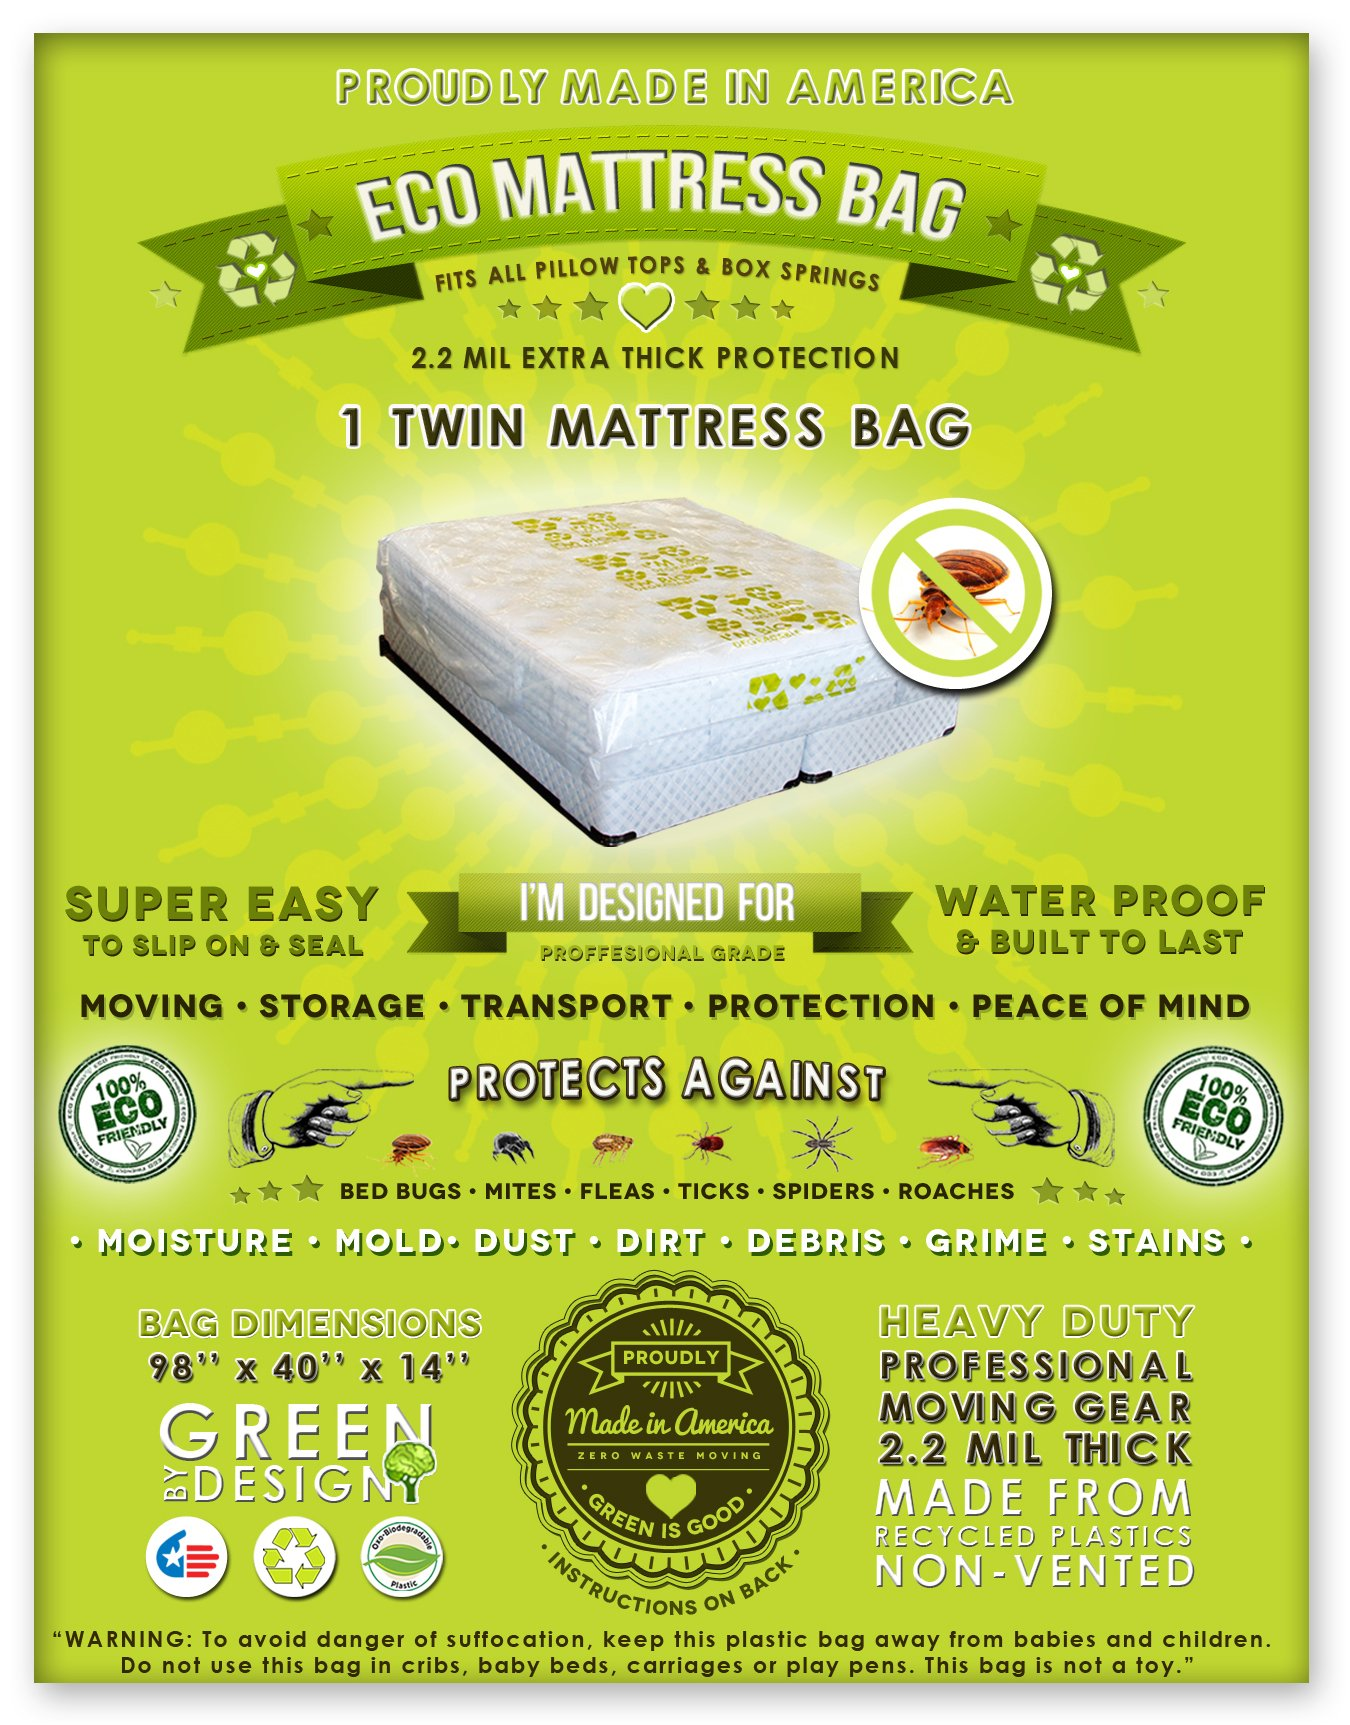 2 Twin Size Mattress Bags. Fits All Pillow Tops and Box Springs. Ideal for Moving, Storage and Protecting Your Mattress. Heavy Duty Professional Grade. Easy to Slip on and Seal. Sleep with Peace of Mind and Don't Let the Bed Bugs Bite. Protect Your Invest